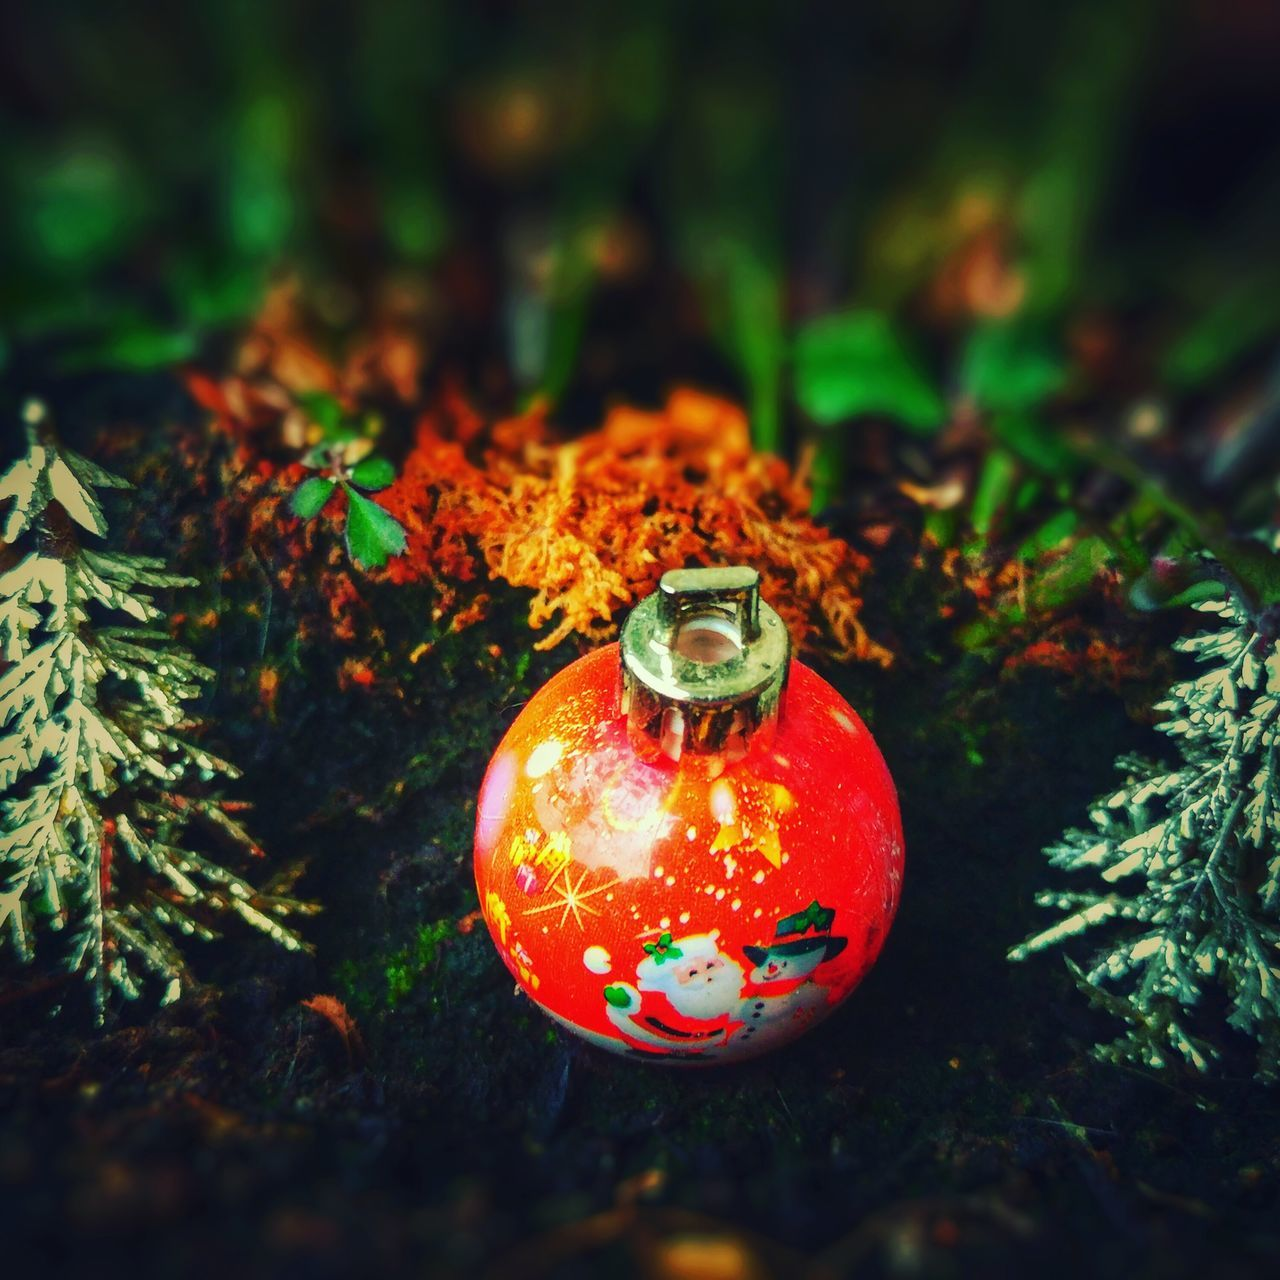 celebration, christmas decoration, christmas, no people, tradition, christmas ornament, close-up, focus on foreground, christmas tree, red, outdoors, holiday - event, bauble, day, nature